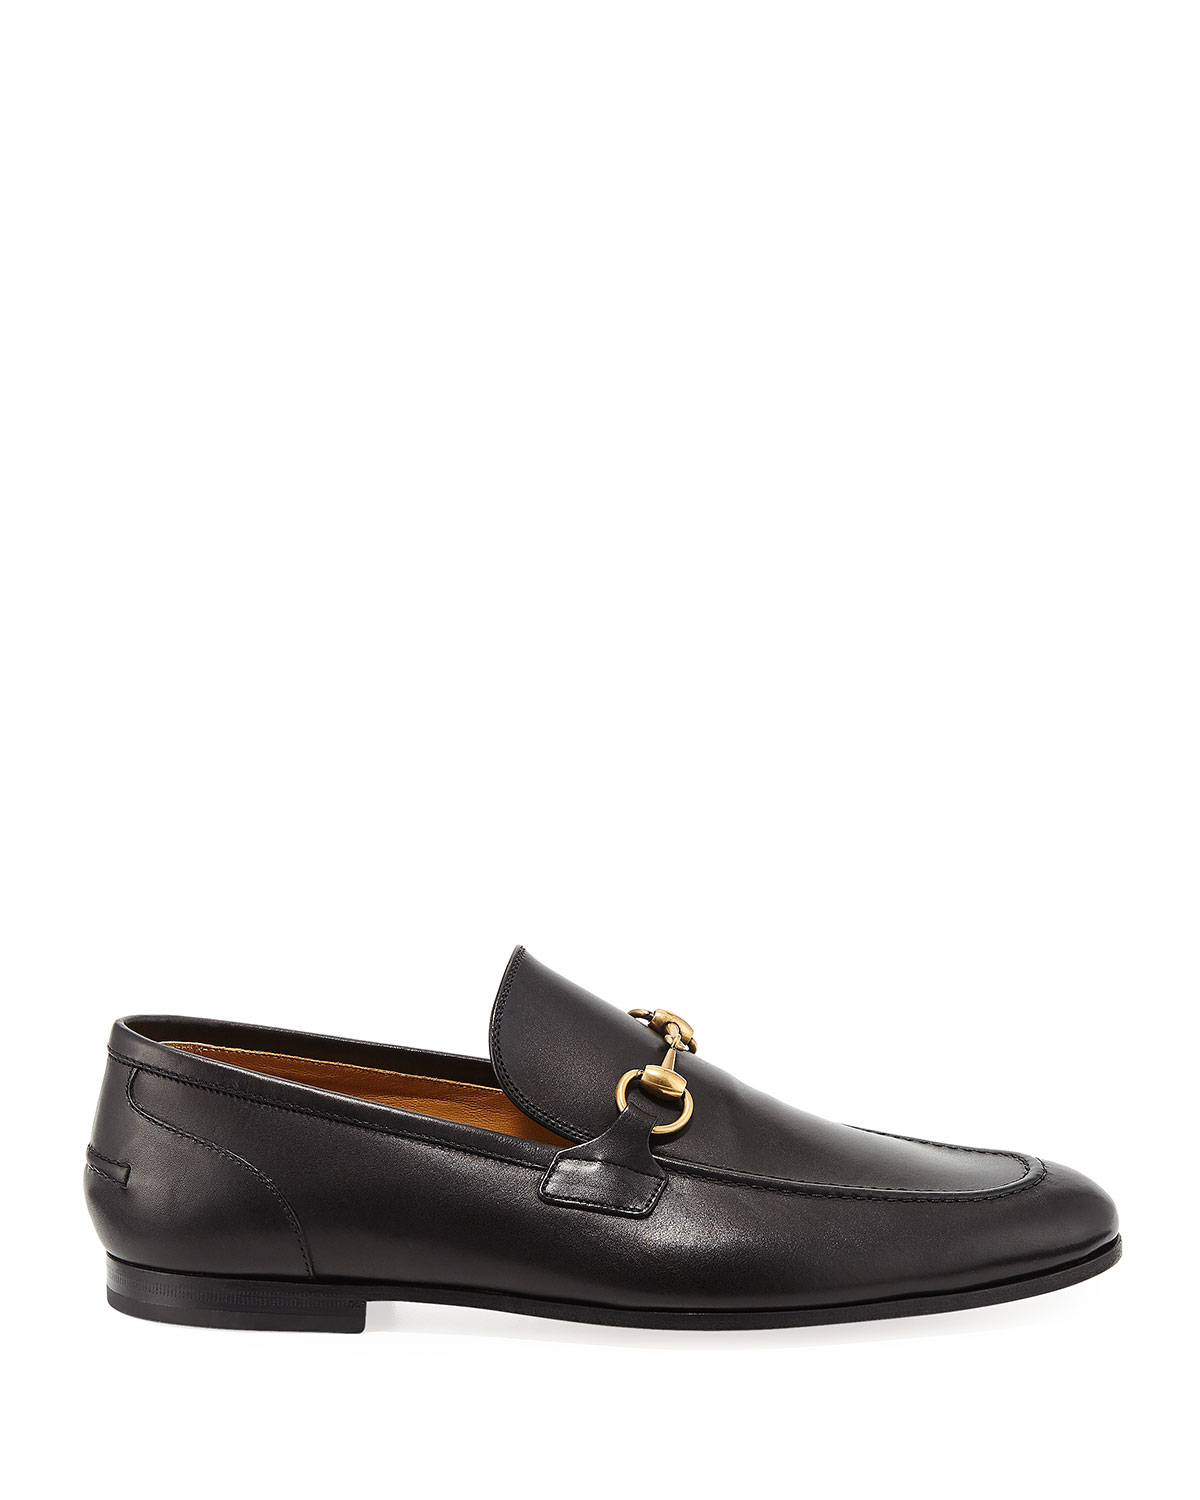 f8cbad1d1 Gucci Gucci Jordaan Leather Loafer | Neiman Marcus